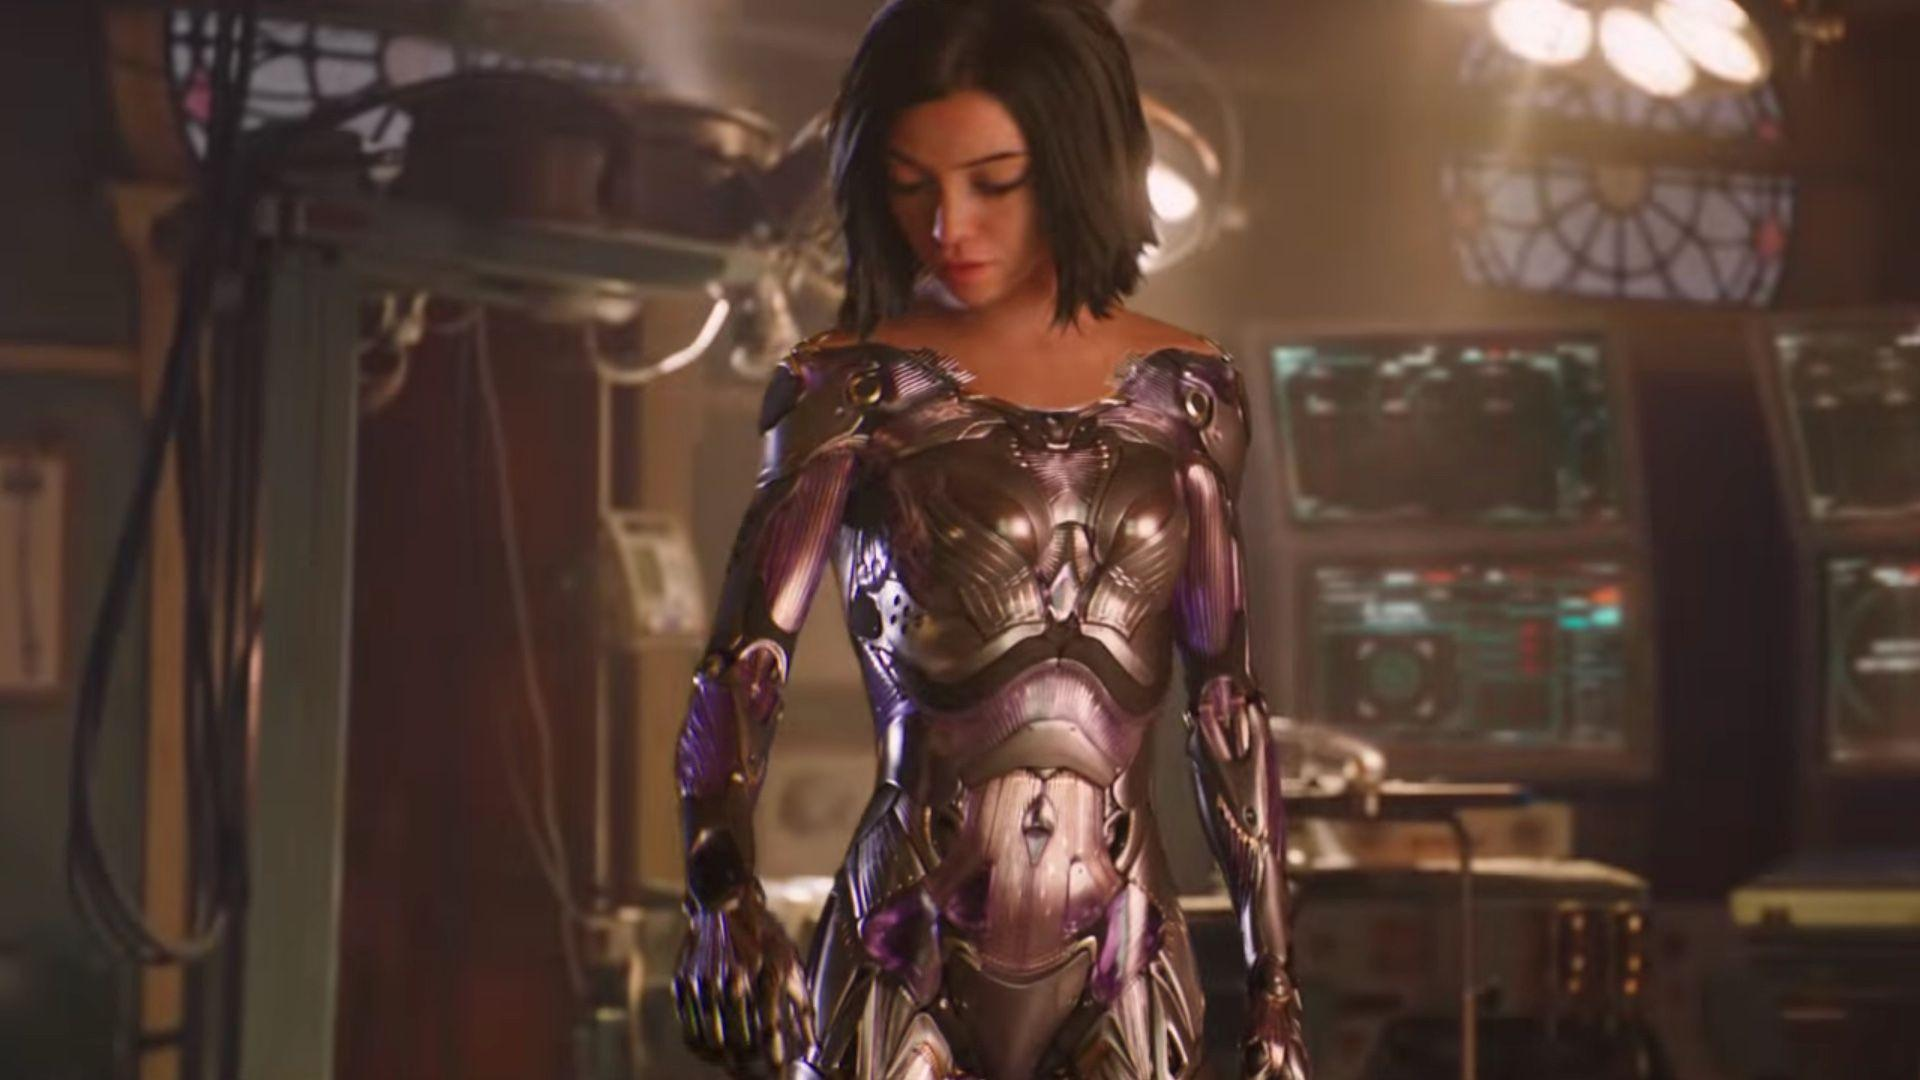 Seriously Kickass New Trailer For ALITA: BATTLE ANGEL!